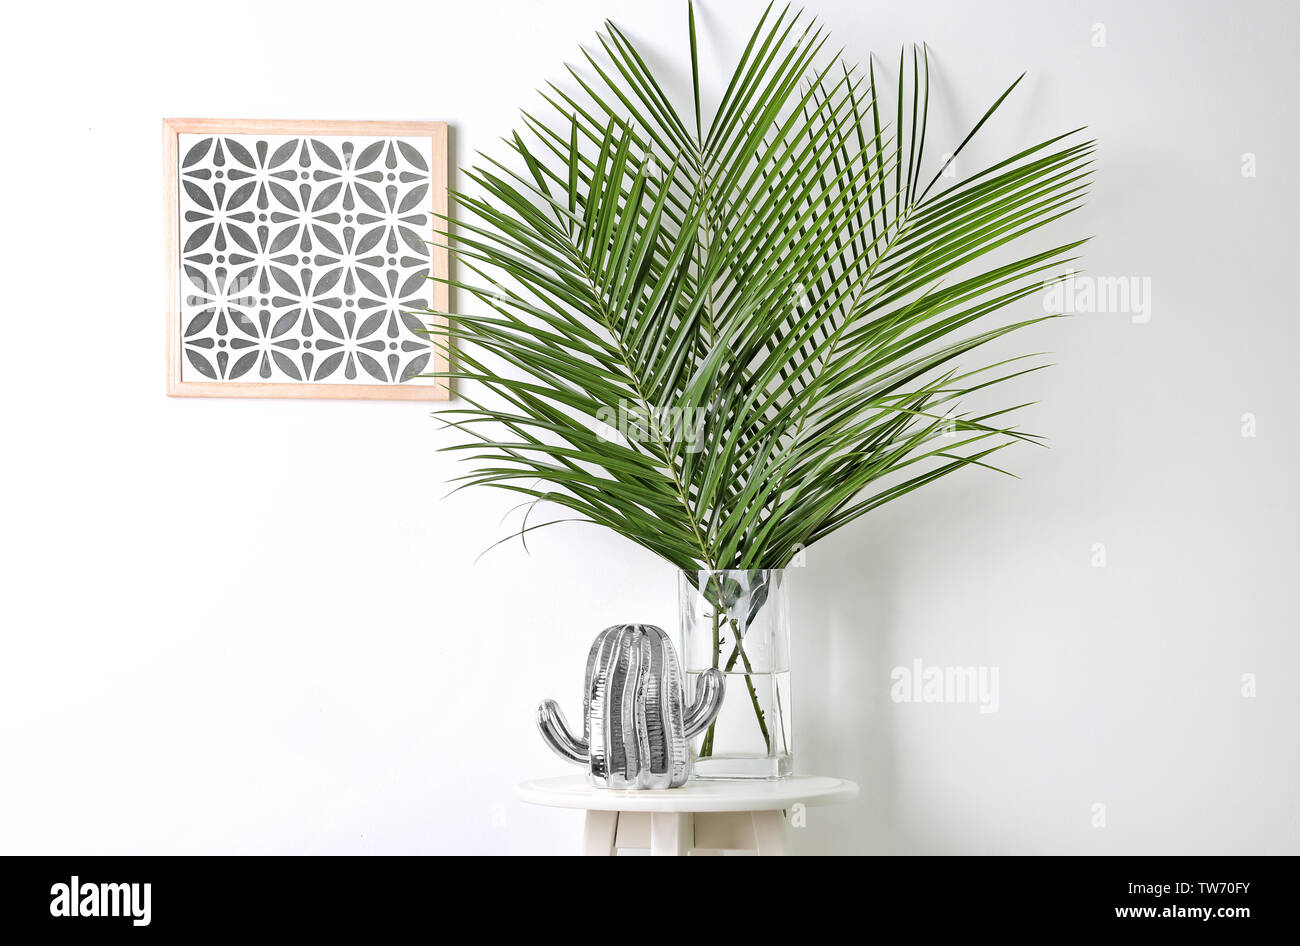 Tropical Leaves In Glass Vase On Table Indoors Stock Photo Alamy Free vectors for your nature, plants, palm trees, evergreen plants, exotic flora and tropical places visuals. https www alamy com tropical leaves in glass vase on table indoors image256465663 html